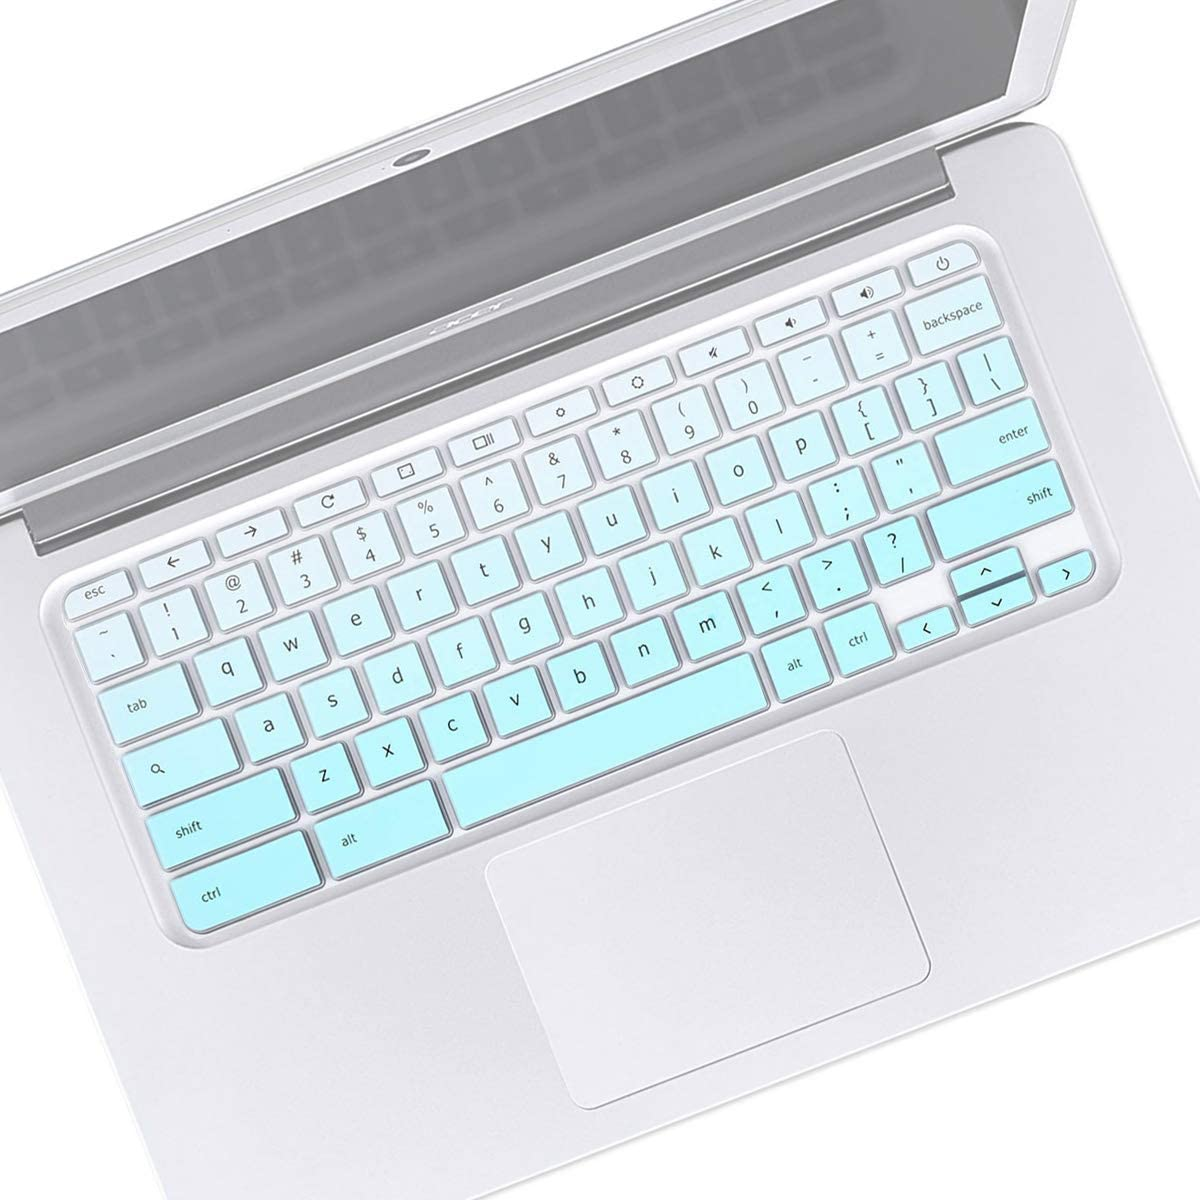 Keyboard Cover for Acer Chromebook Spin 11 311 511 11.6"